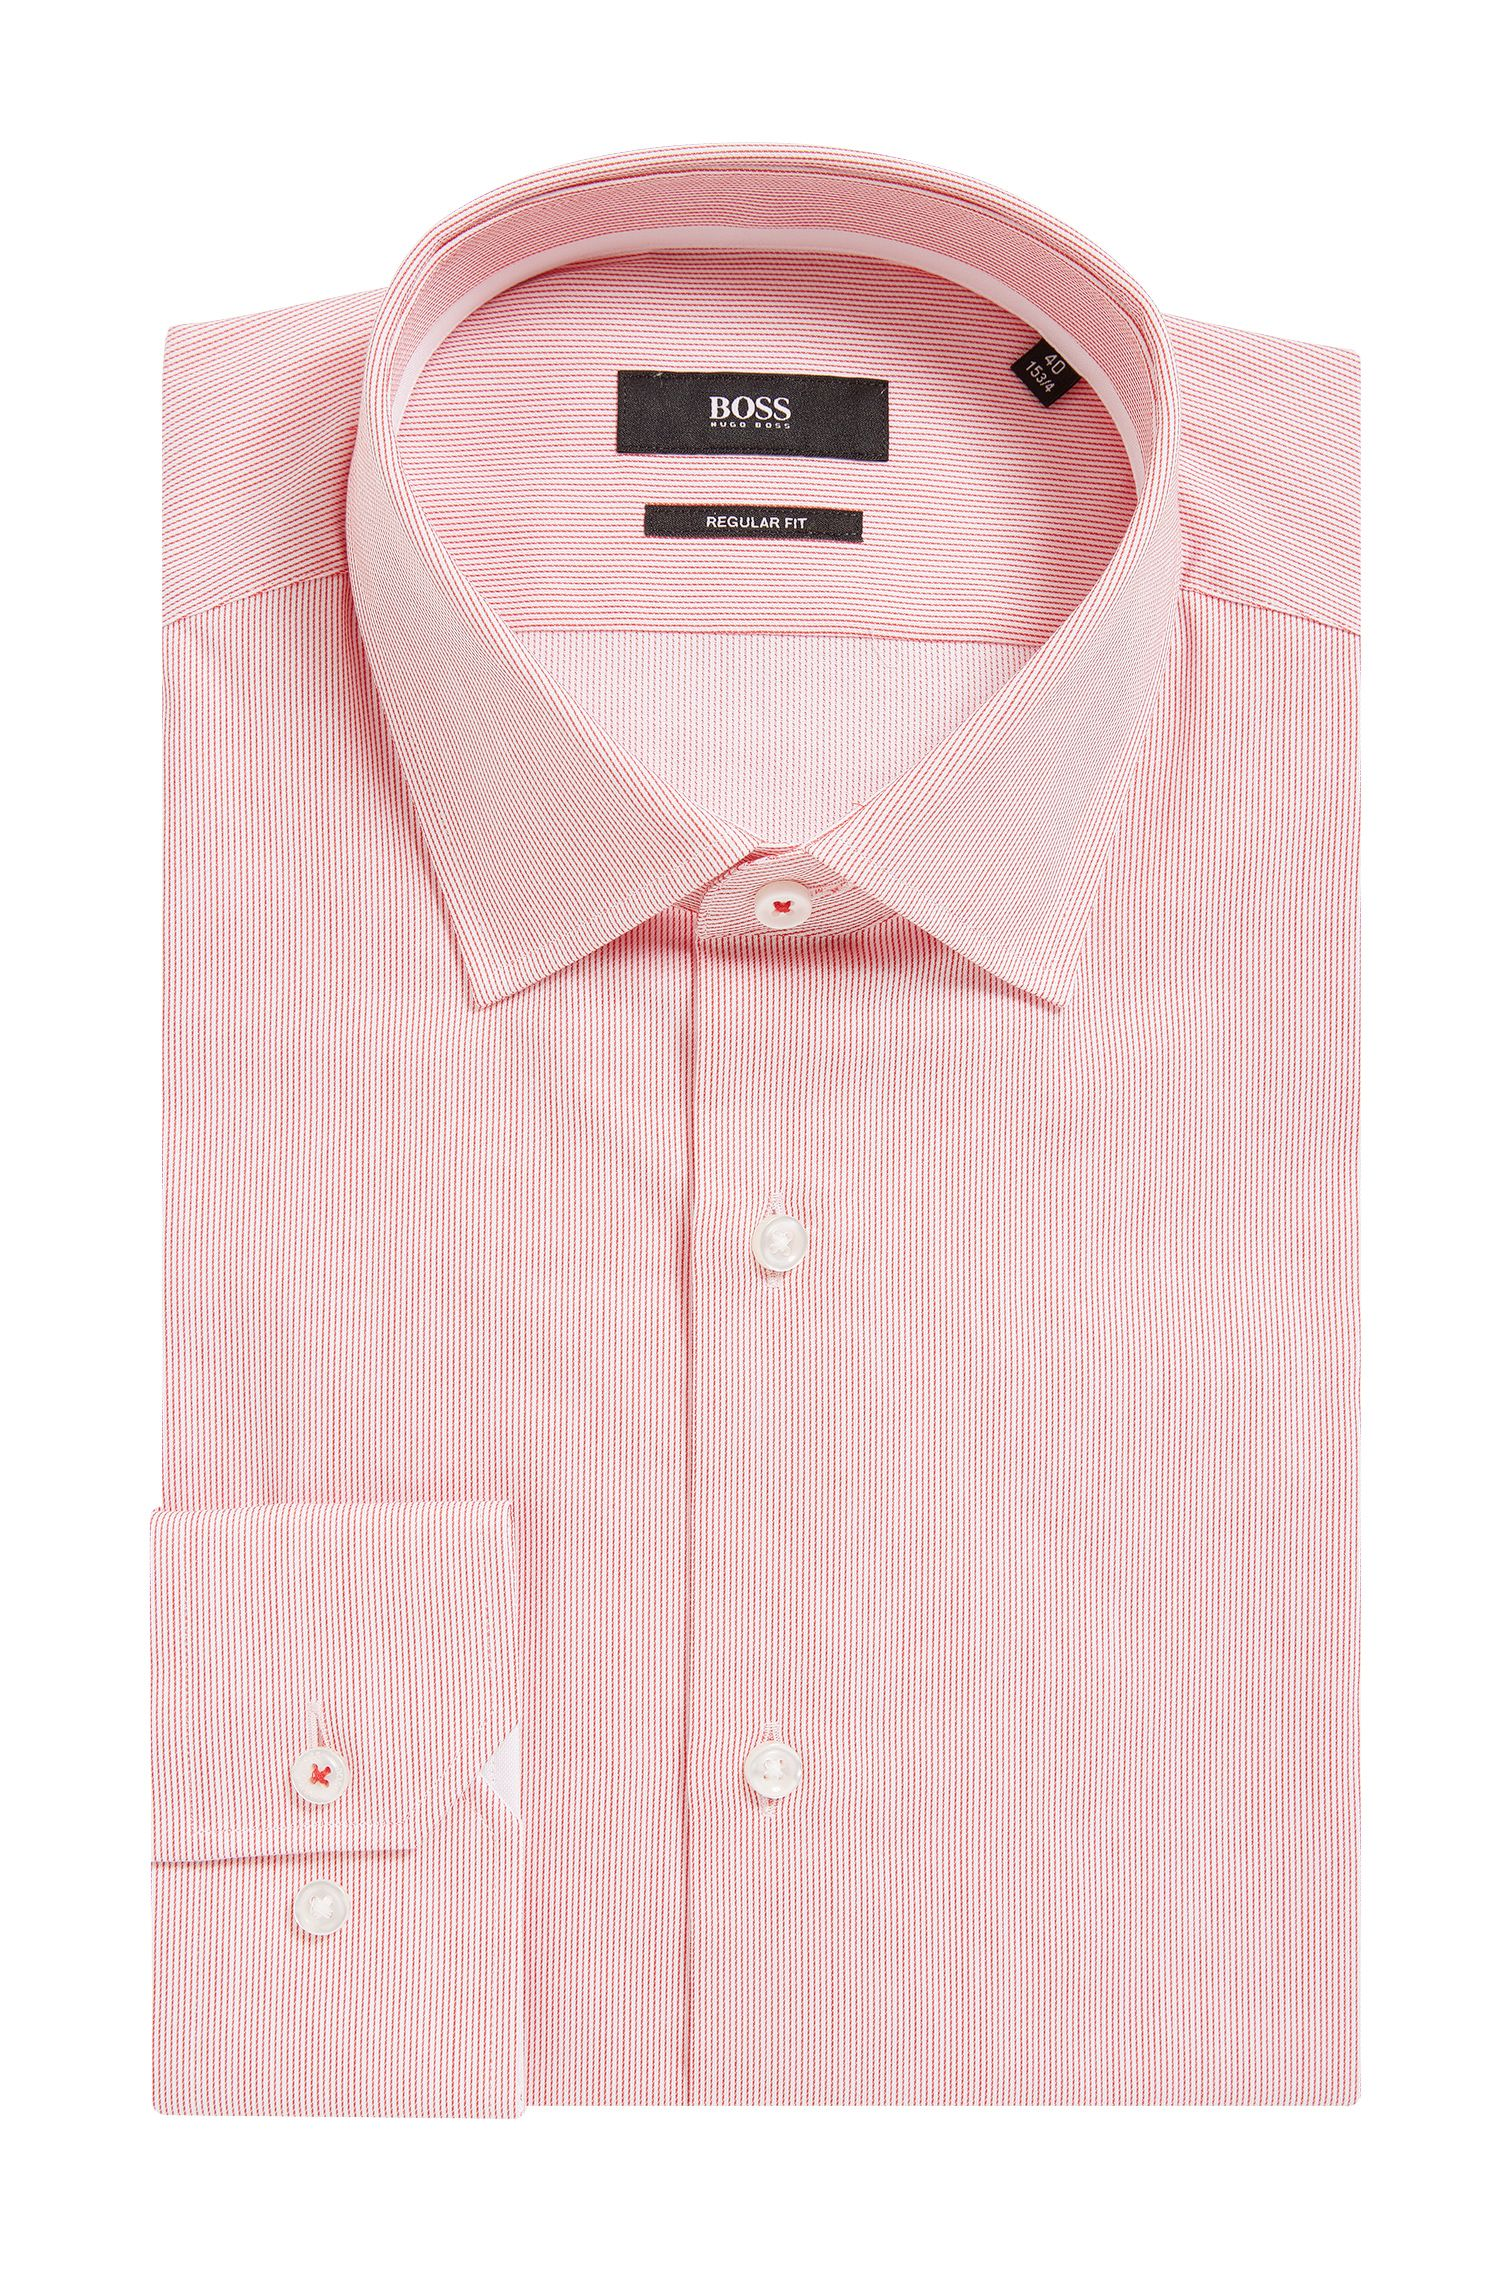 Striped Cotton Dress Shirt, Regular Fit | Gelson